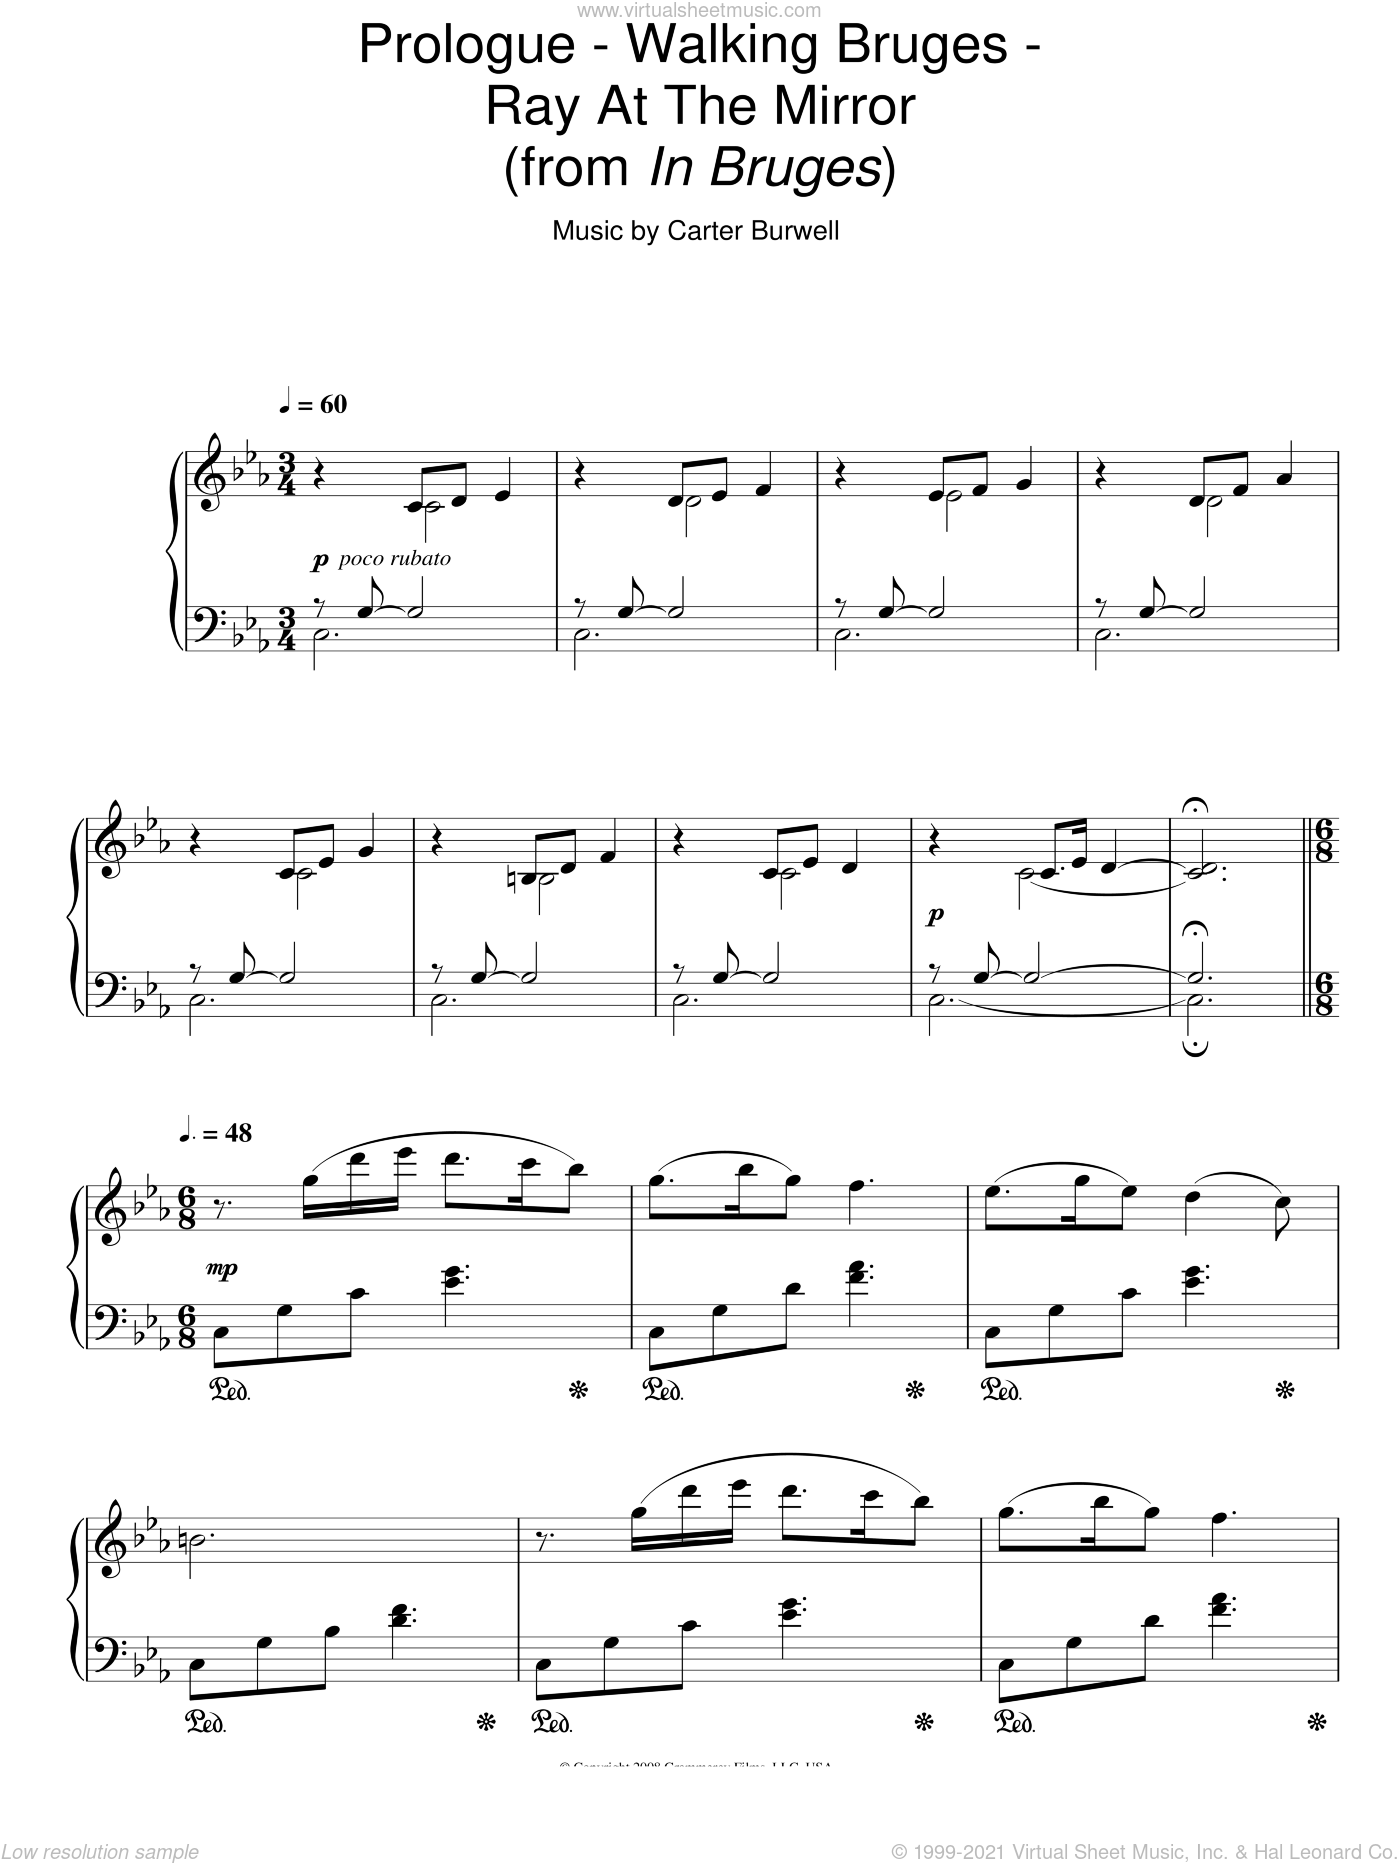 Prologue - Walking Bruges - Ray At The Mirror sheet music for piano solo by Carter Burwell, intermediate piano. Score Image Preview.